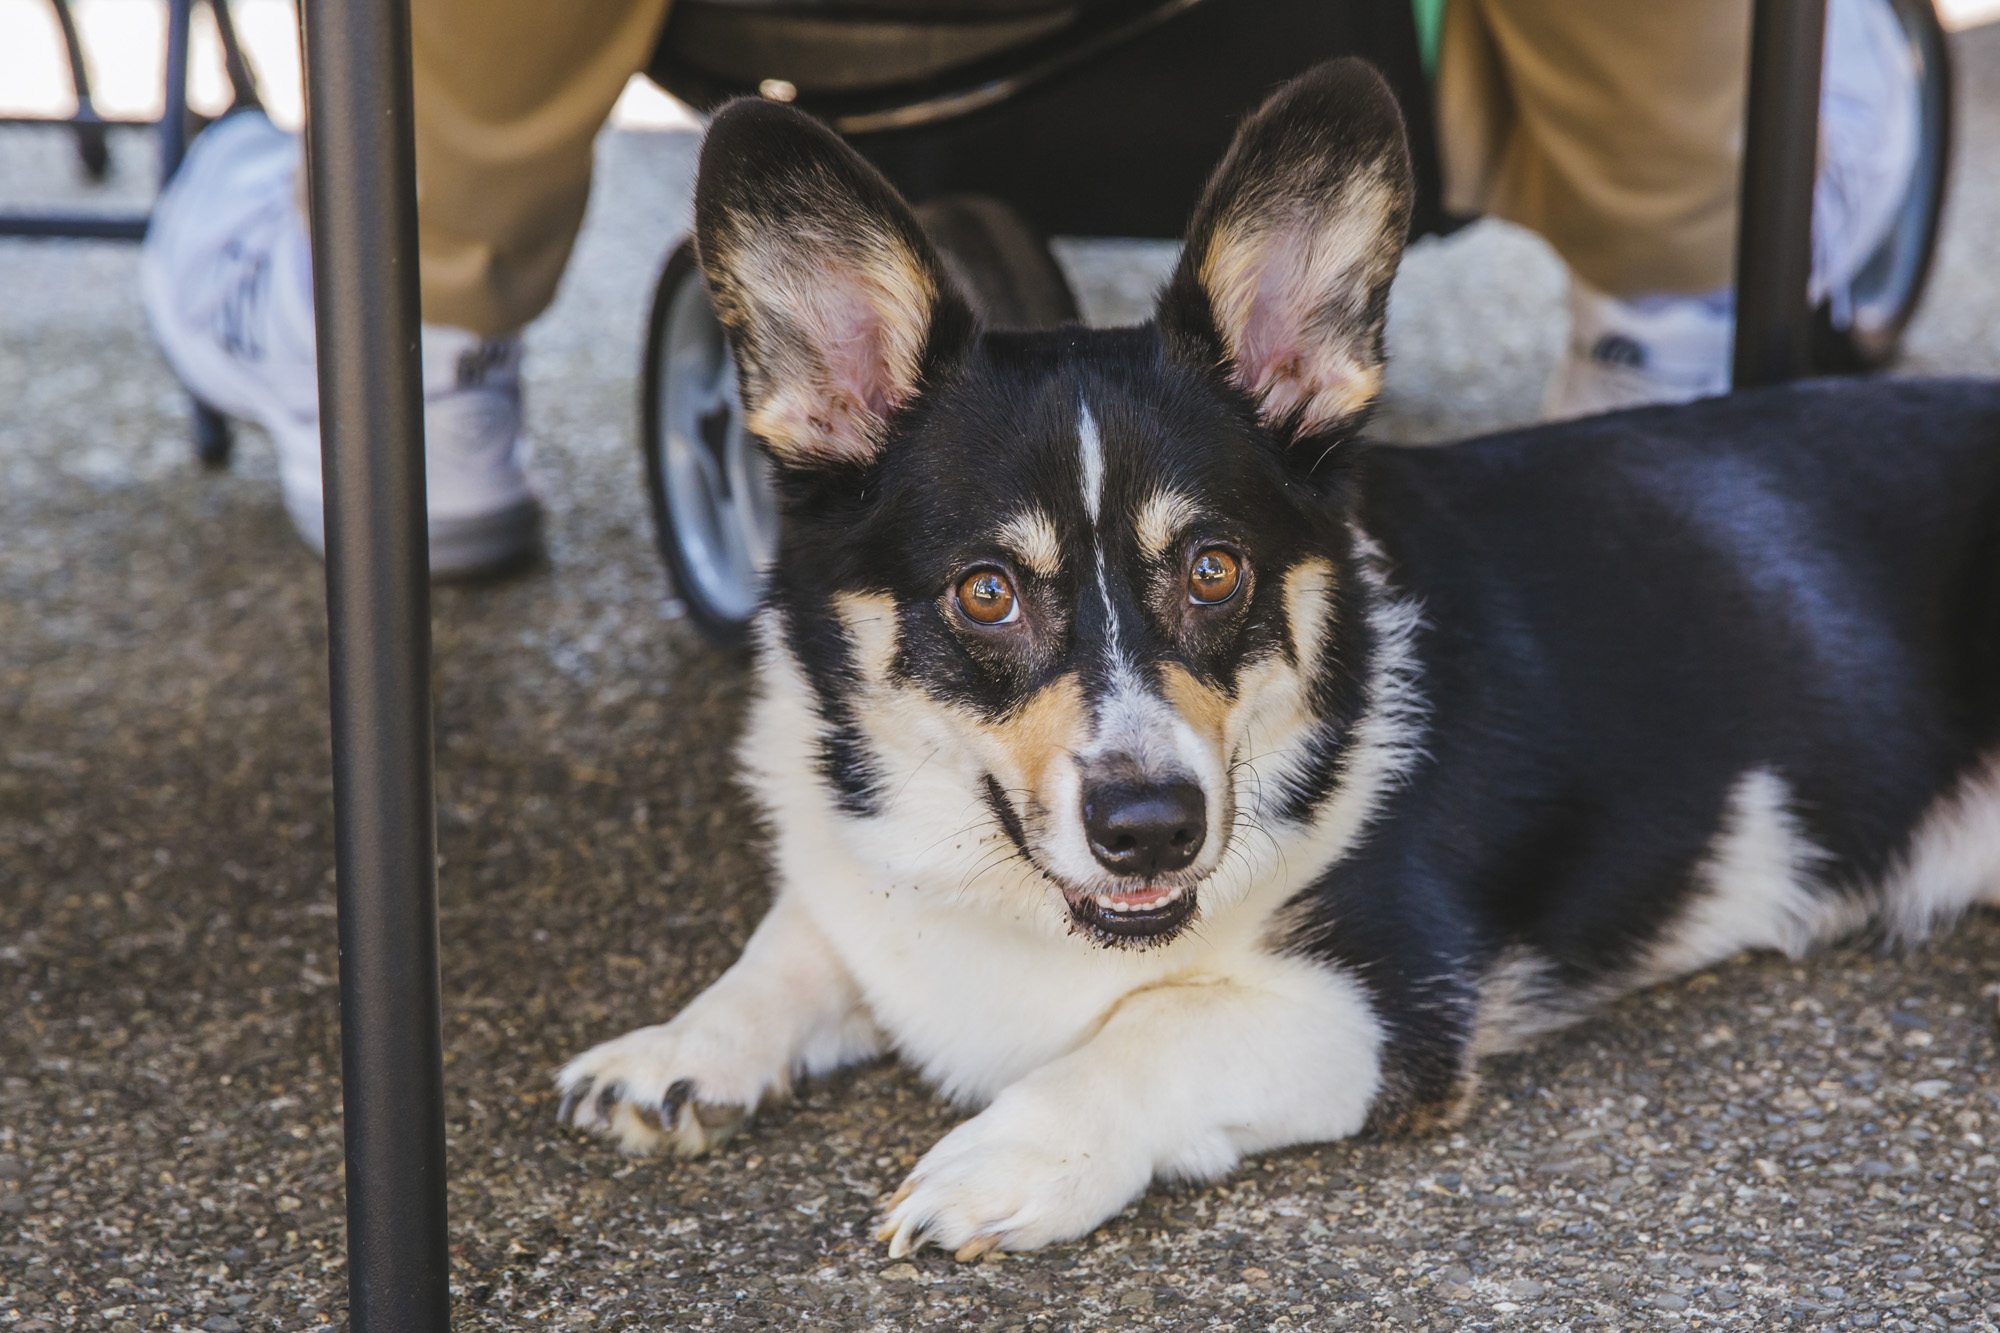 Over 150 owners and their corgis came out to the 2018 Pacific Northwest Corgi Picnic in Woodinville, WA. Kathy and Leo Notenboom host the annual event at their home, which raises money for CorgiAid, a not-for-profit corgi assistance organization. The corgi picnic has become a ticketed event to limit attendance because it has become so popular and to be a safe environment for everyone. (Image: Sunita Martini / Seattle Refined)